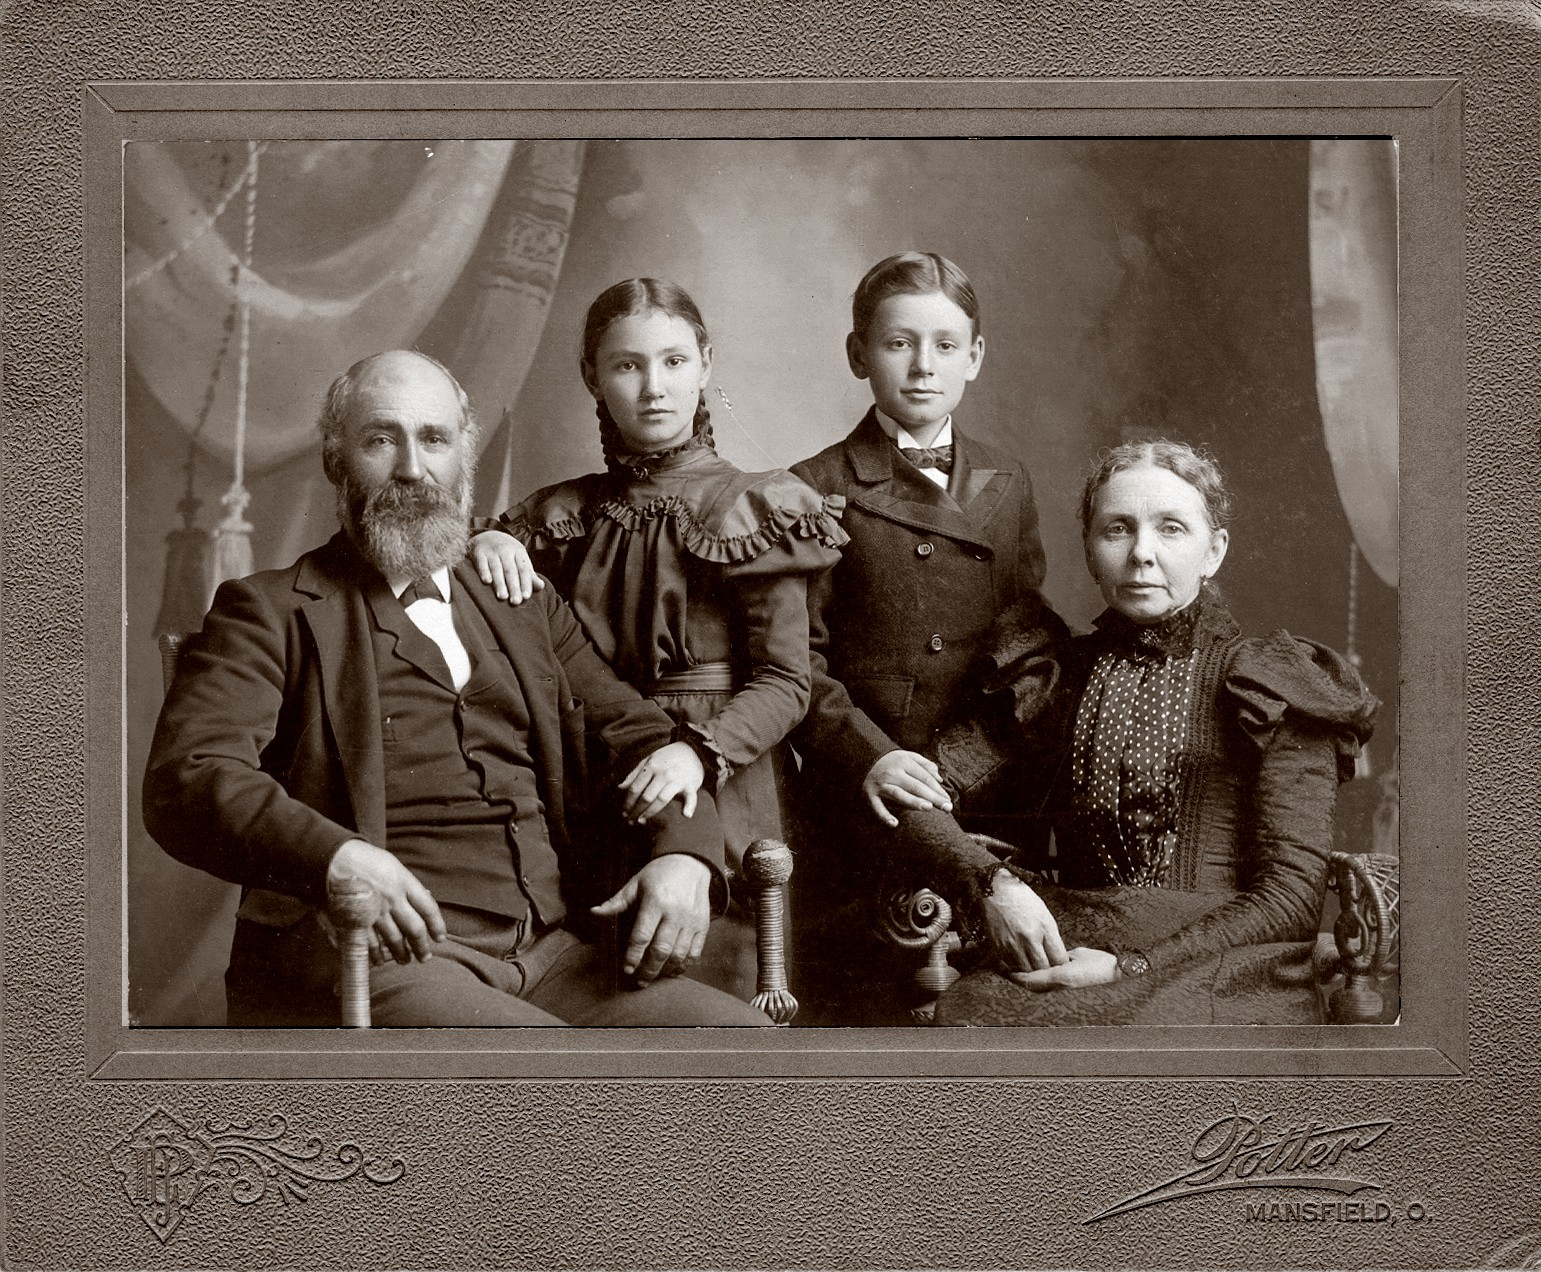 My great, great grandparents along with my great grandfather and his sister.